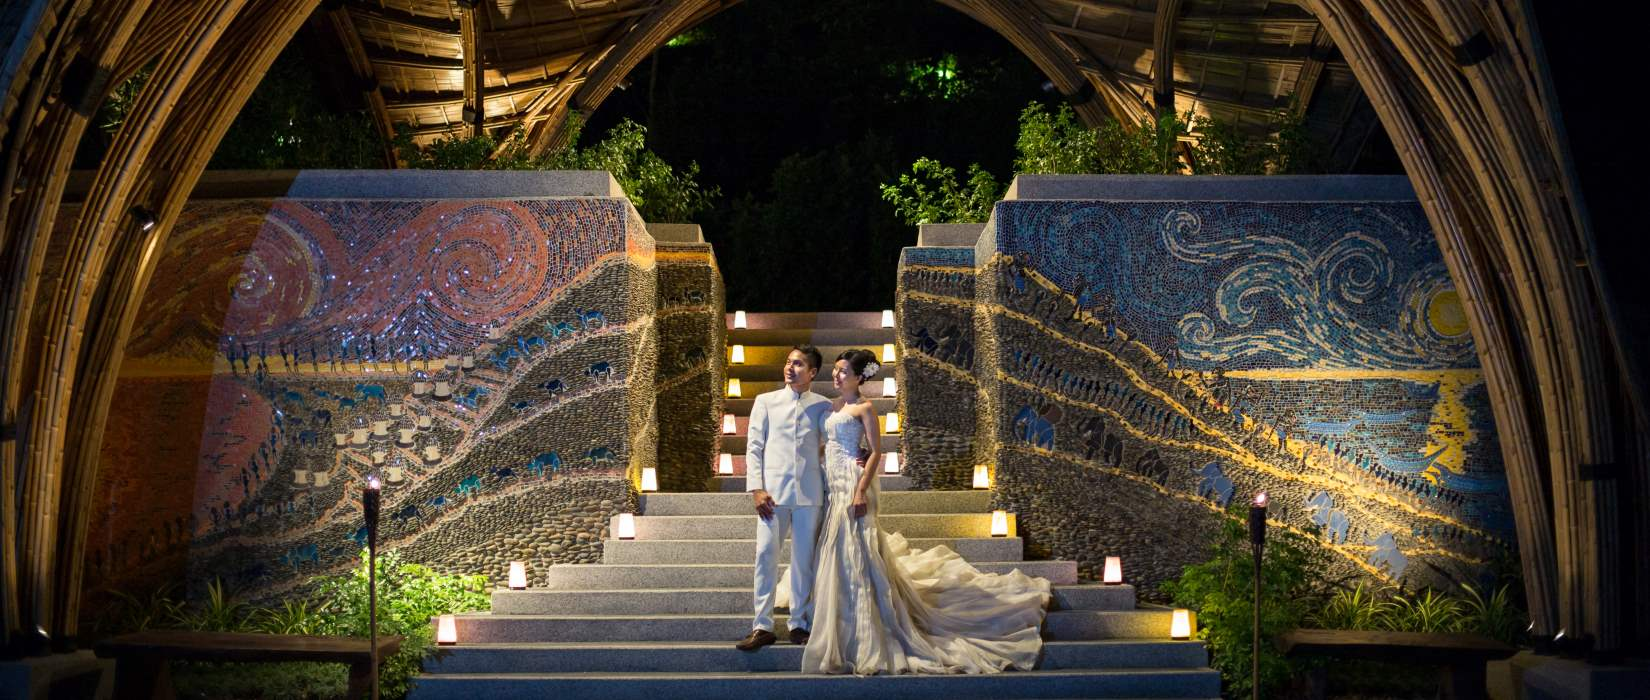 PERFECT WEDDING PHOTOGRAPHY - Keemala Hotel Phuket